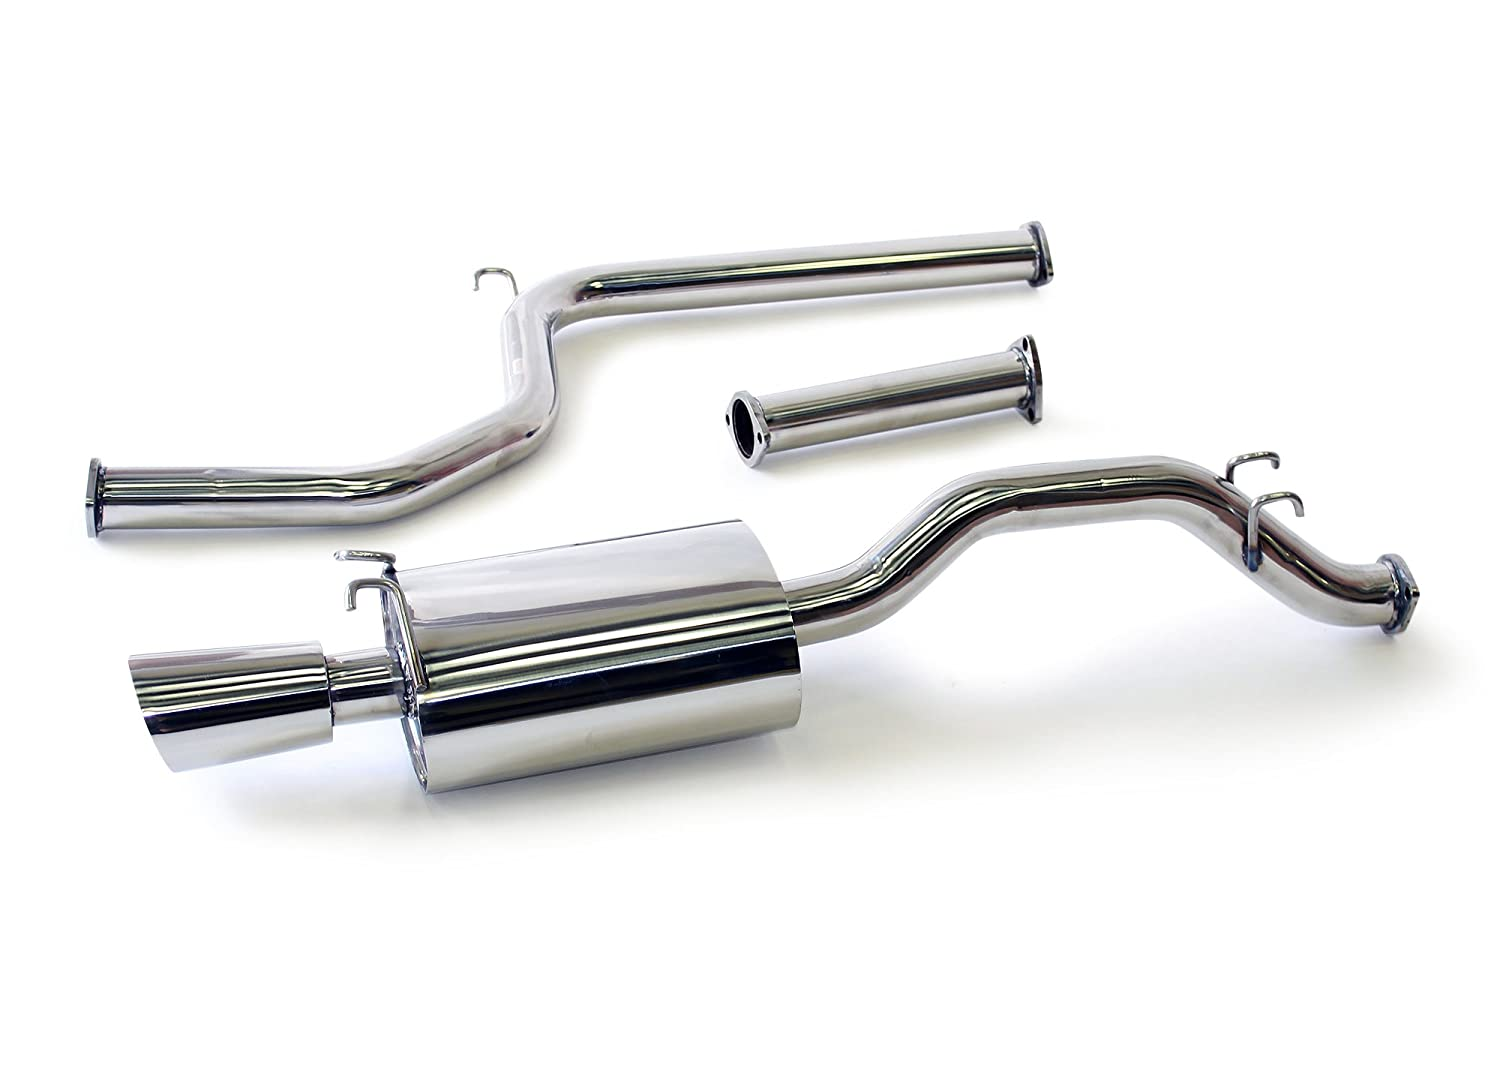 2.0L Si Only Yonaka Honda Civic 2006-2011 2DR Coupe 2.5 Performance Catback Exhaust